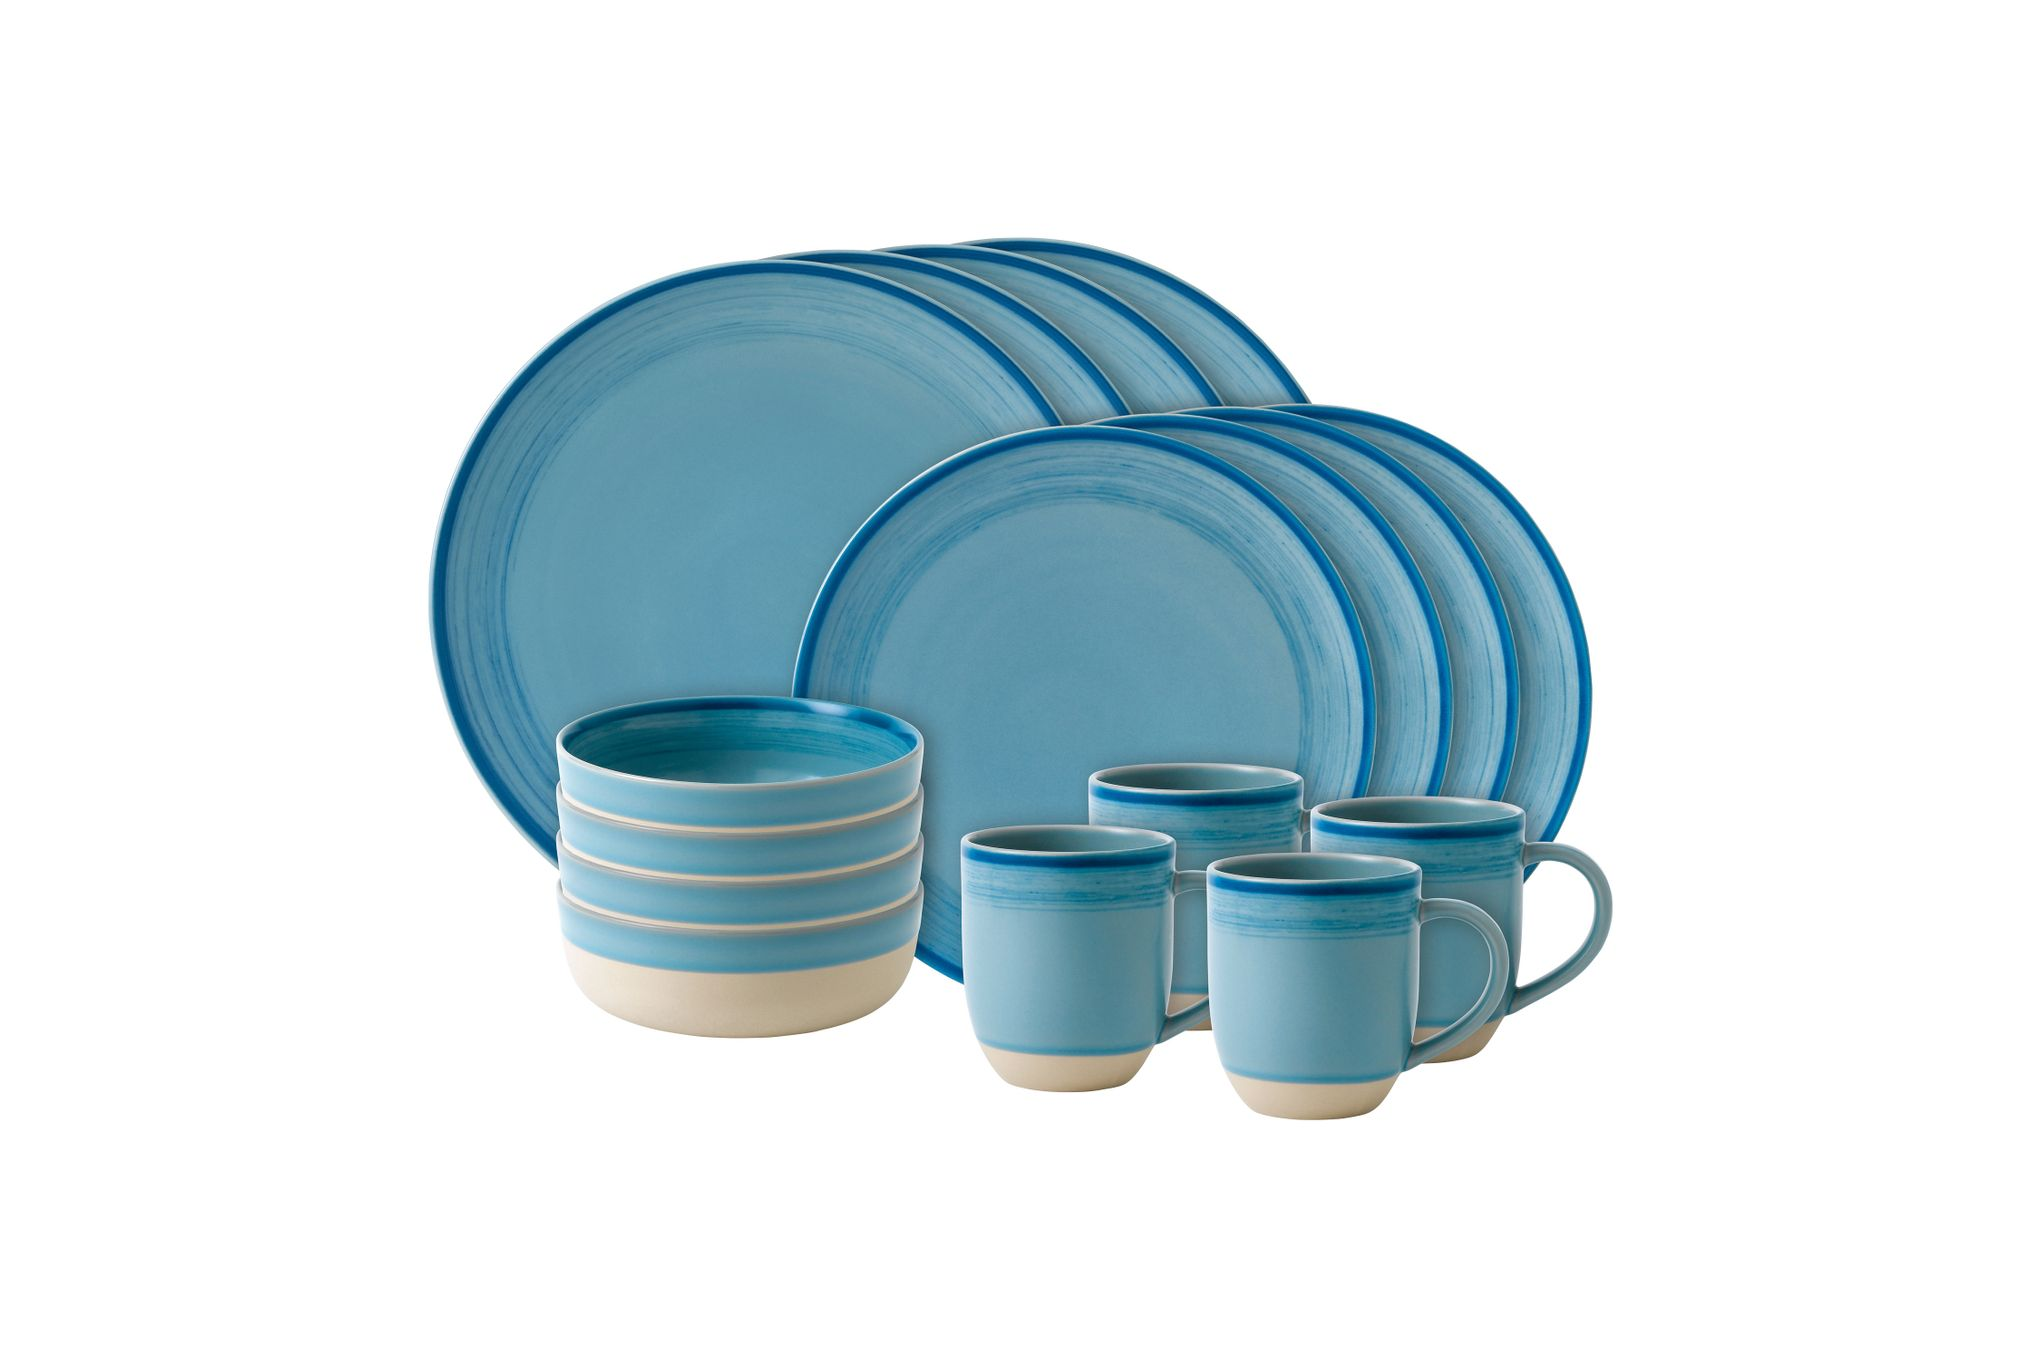 Ellen DeGeneres for Royal Doulton Brushed Glaze Sets 16 Piece Set Polar Blue thumb 1